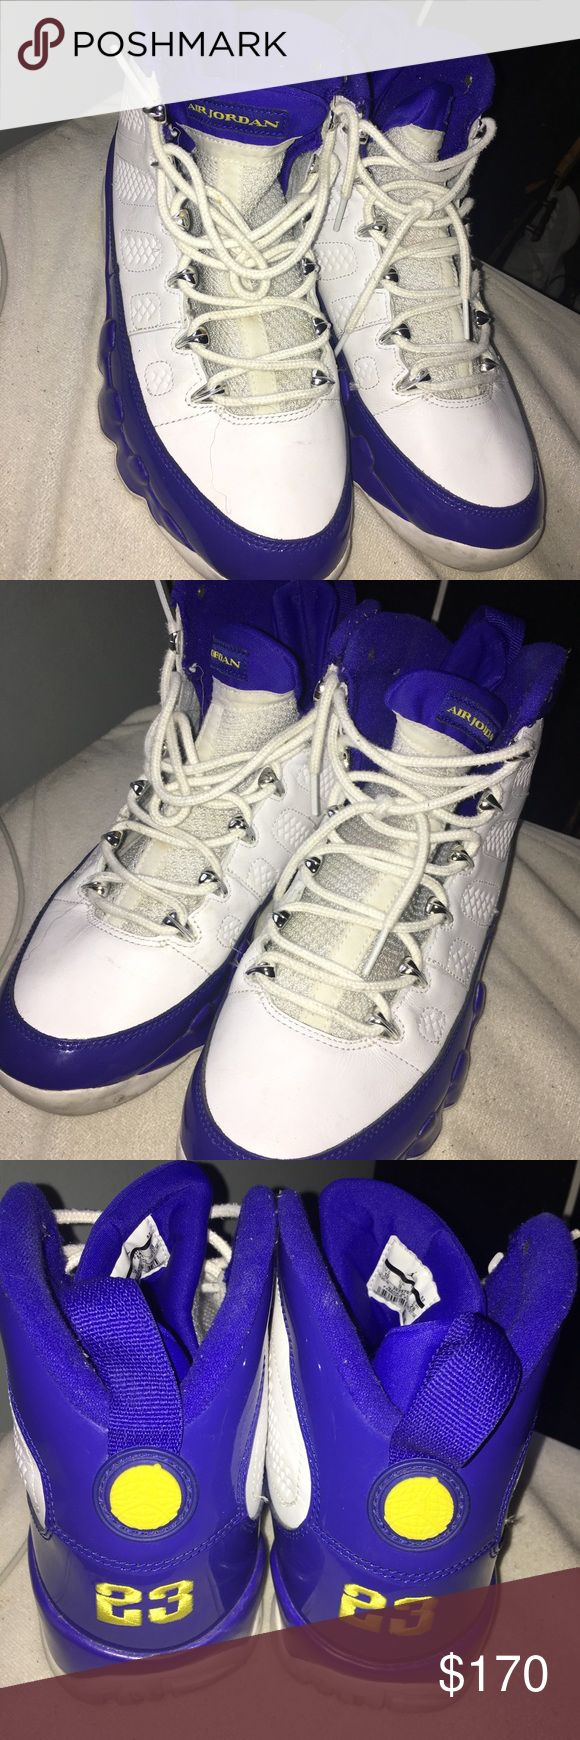 Jordan 9 Kobe edition size 10. Kobe edition Free shipping. Cash app or Paypal only . Blue. 100% authentic Jordan Shoes Sneakers